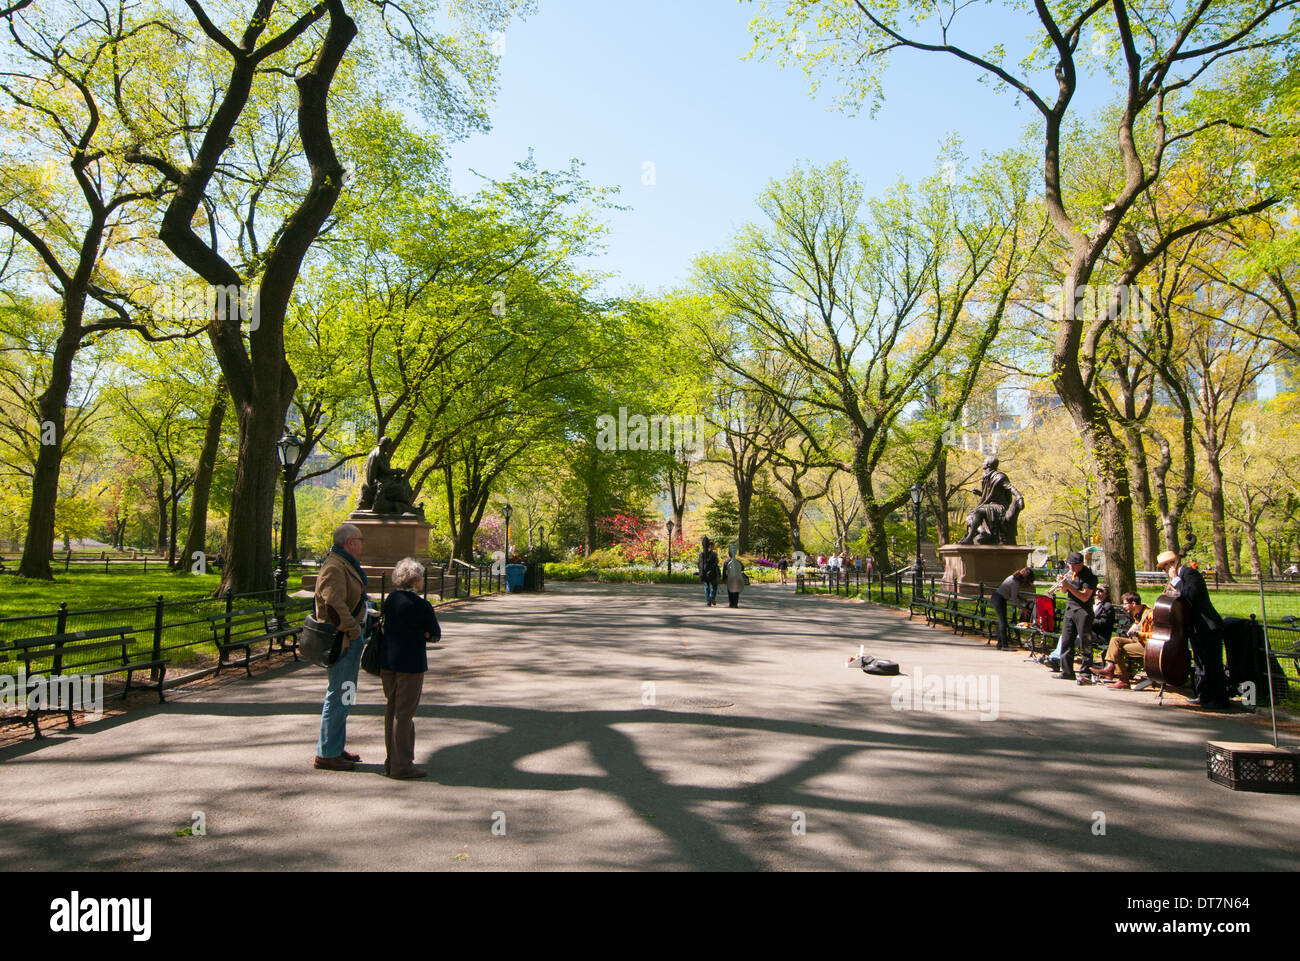 A pretty spring day on the Mall in Central Park, New York City USA Stock Photo